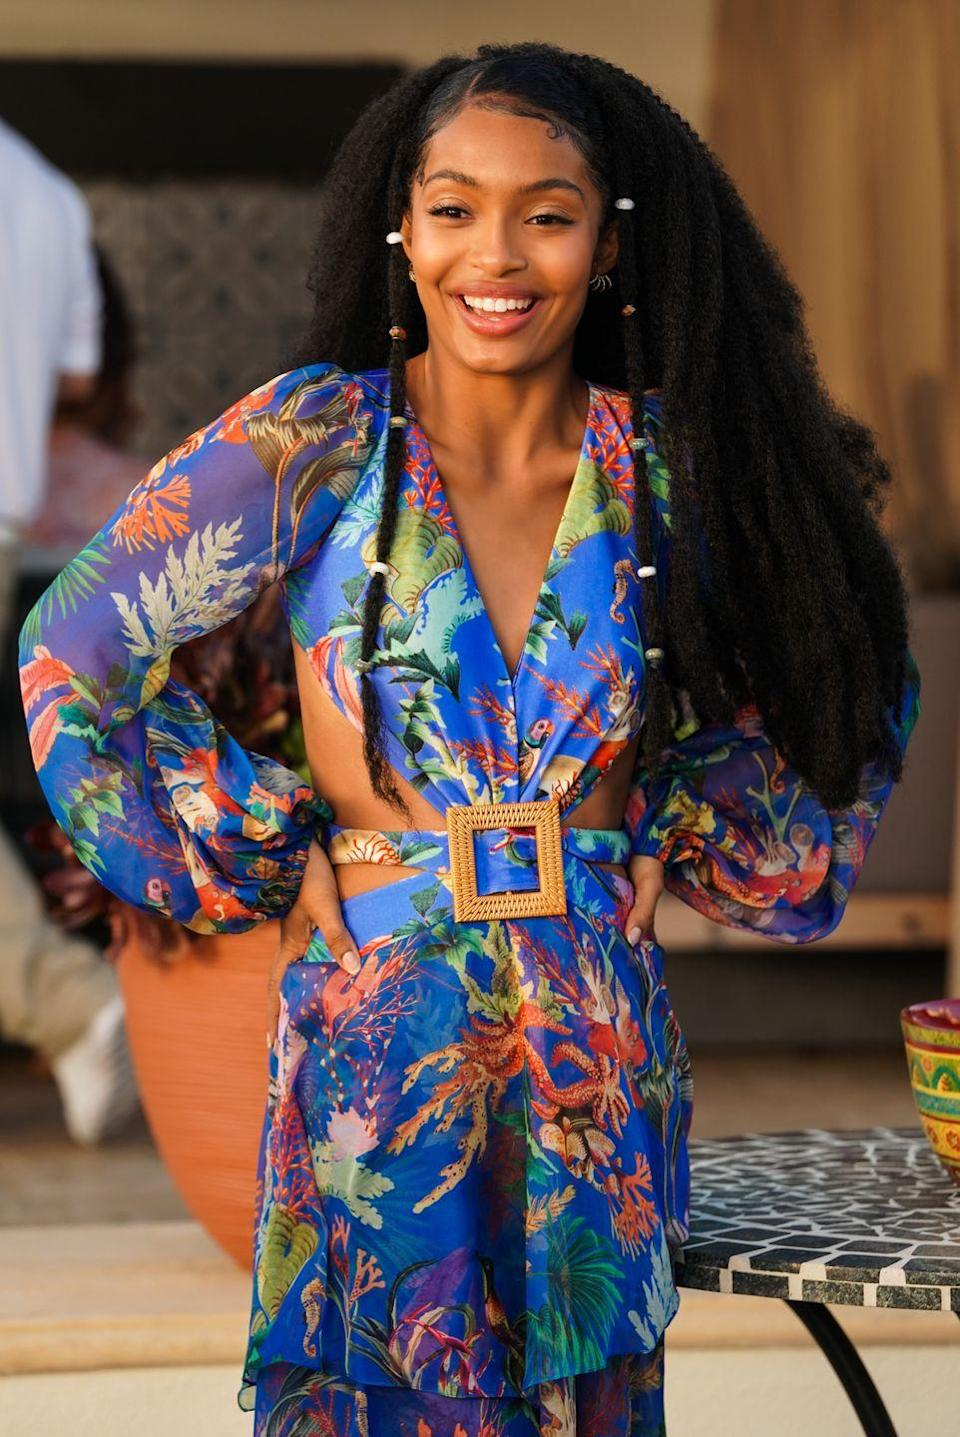 """<p>Yara Shahidi has been making waves with her hair ever since her debut on the hit television show <em>Black-ish.</em> The 21-year-old actress got her own spin off show<em> Grown-ish</em> in 2018, where her hair is always being highlighted On the show, her character Zoey can be seen wearing anything from her natural fro to bantu knots to exquisite locs fastened with beautiful charms. In an interview with the <a href=""""https://www.today.com/video/-black-ish-star-yara-shahidi-on-why-she-loves-her-hair-1483232323892"""" rel=""""nofollow noopener"""" target=""""_blank"""" data-ylk=""""slk:Today Show"""" class=""""link rapid-noclick-resp""""><em>Today Show</em> </a> in 2019, Yara said, """"I can't help but take up space when my hair is out. It constantly serves as a reminder that I deserve to take up the space that I am in.""""</p>"""